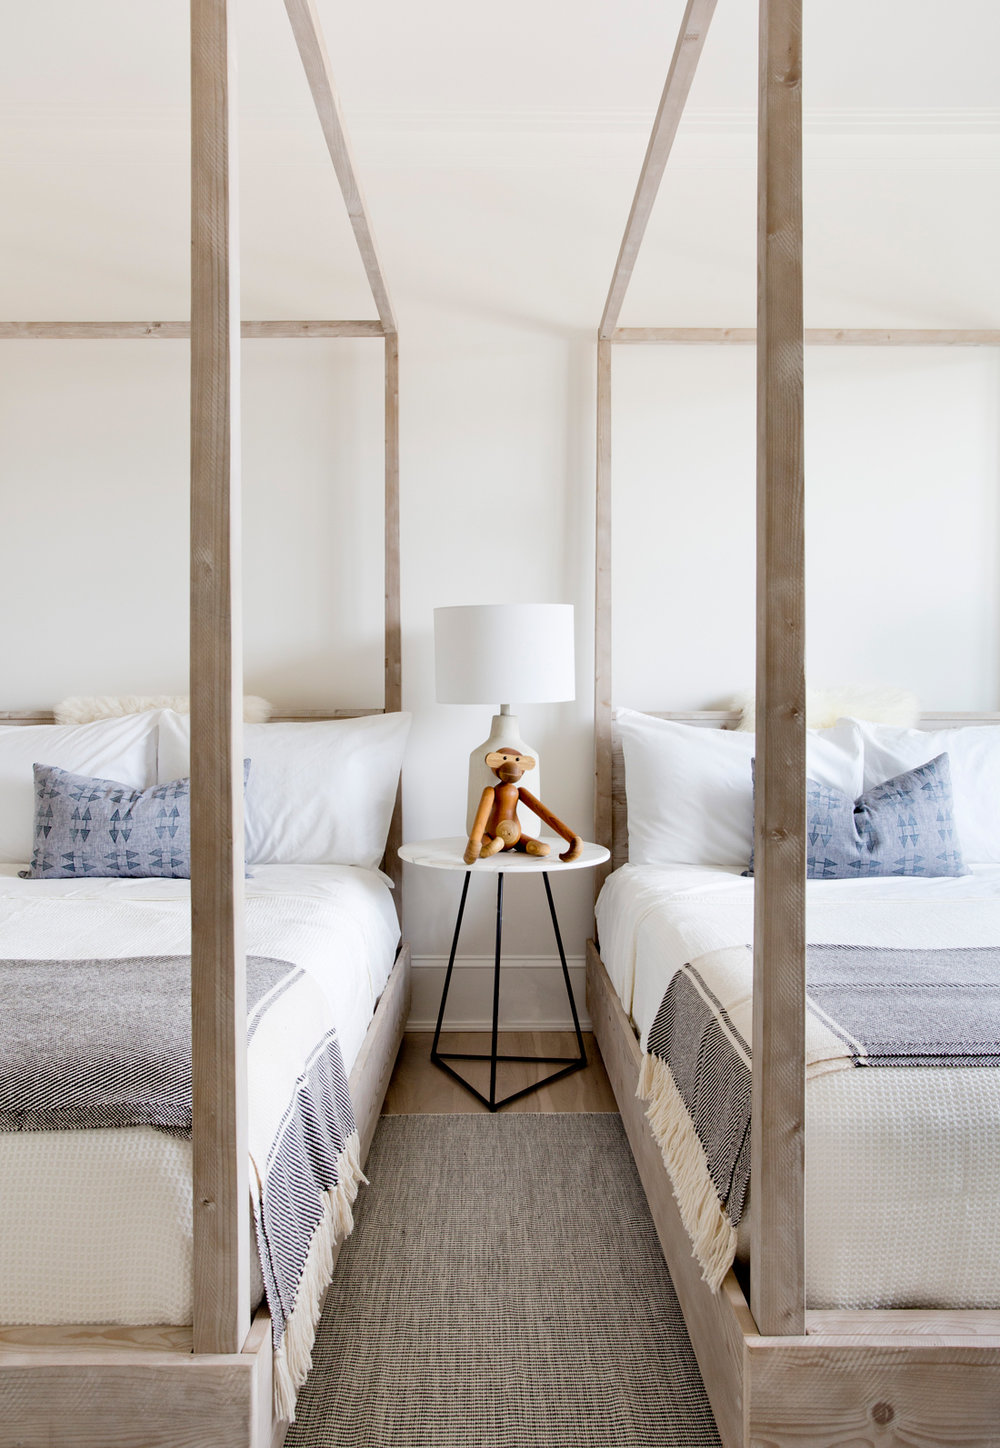 Beach Pretty House Tours:  12-hedges-lane-sagaponack-tamara-magel-dpages.jpg